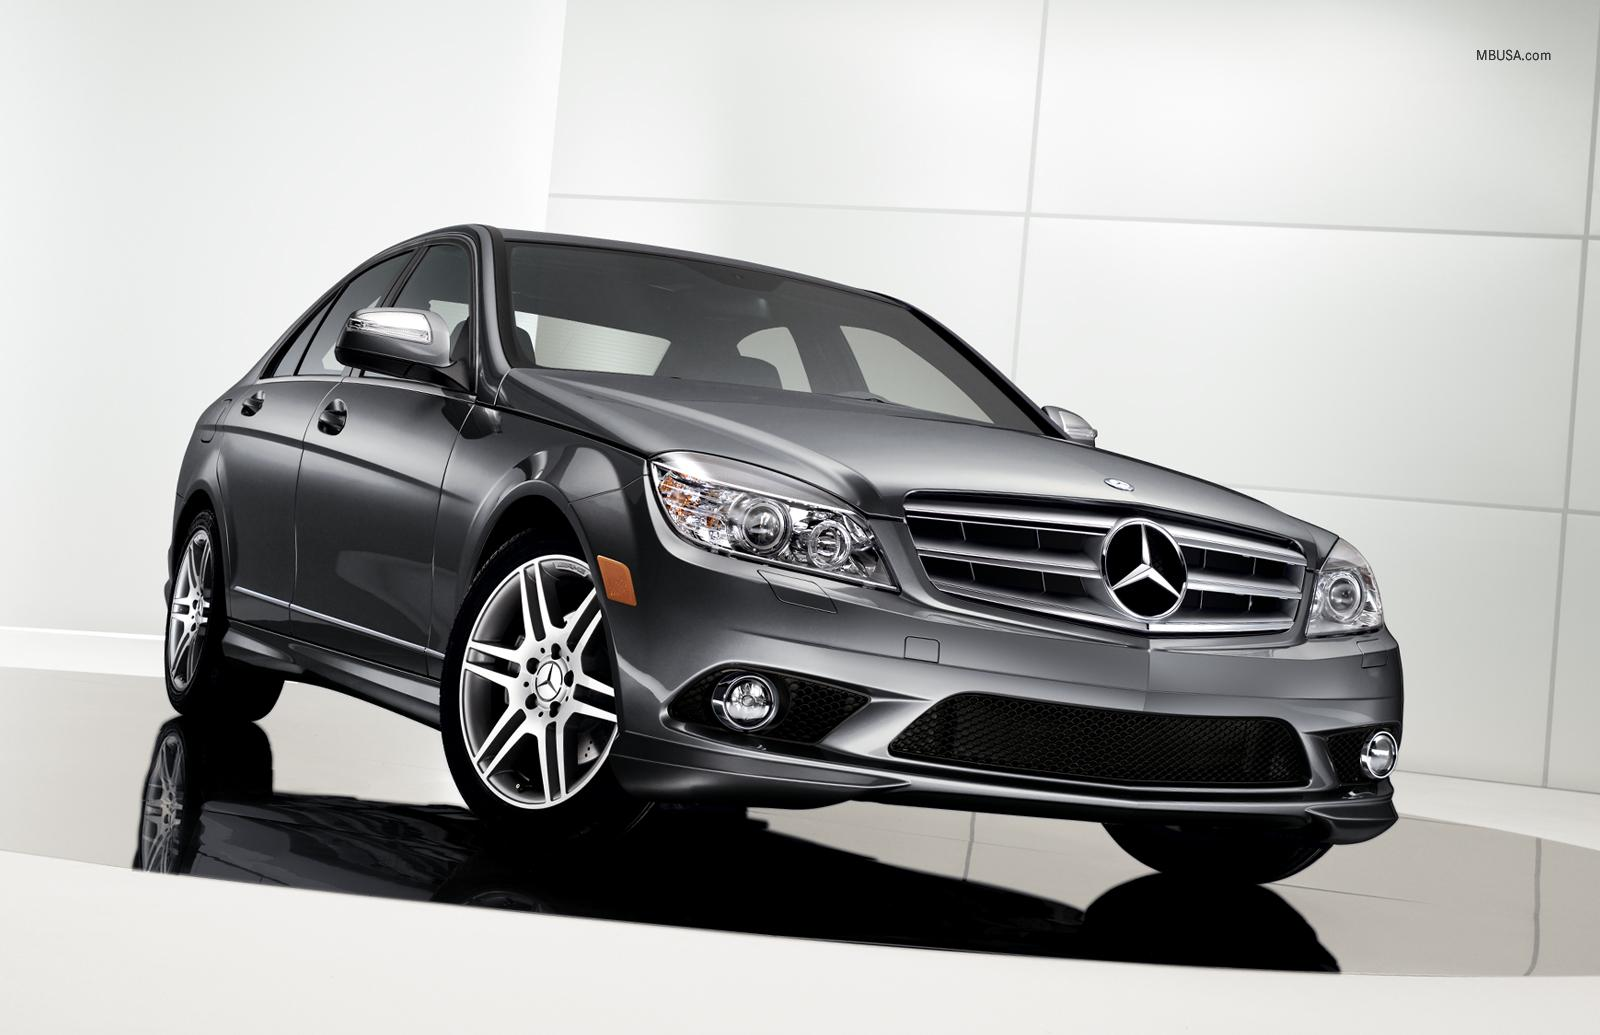 2008 mercedes c class pricing announced top speed. Black Bedroom Furniture Sets. Home Design Ideas